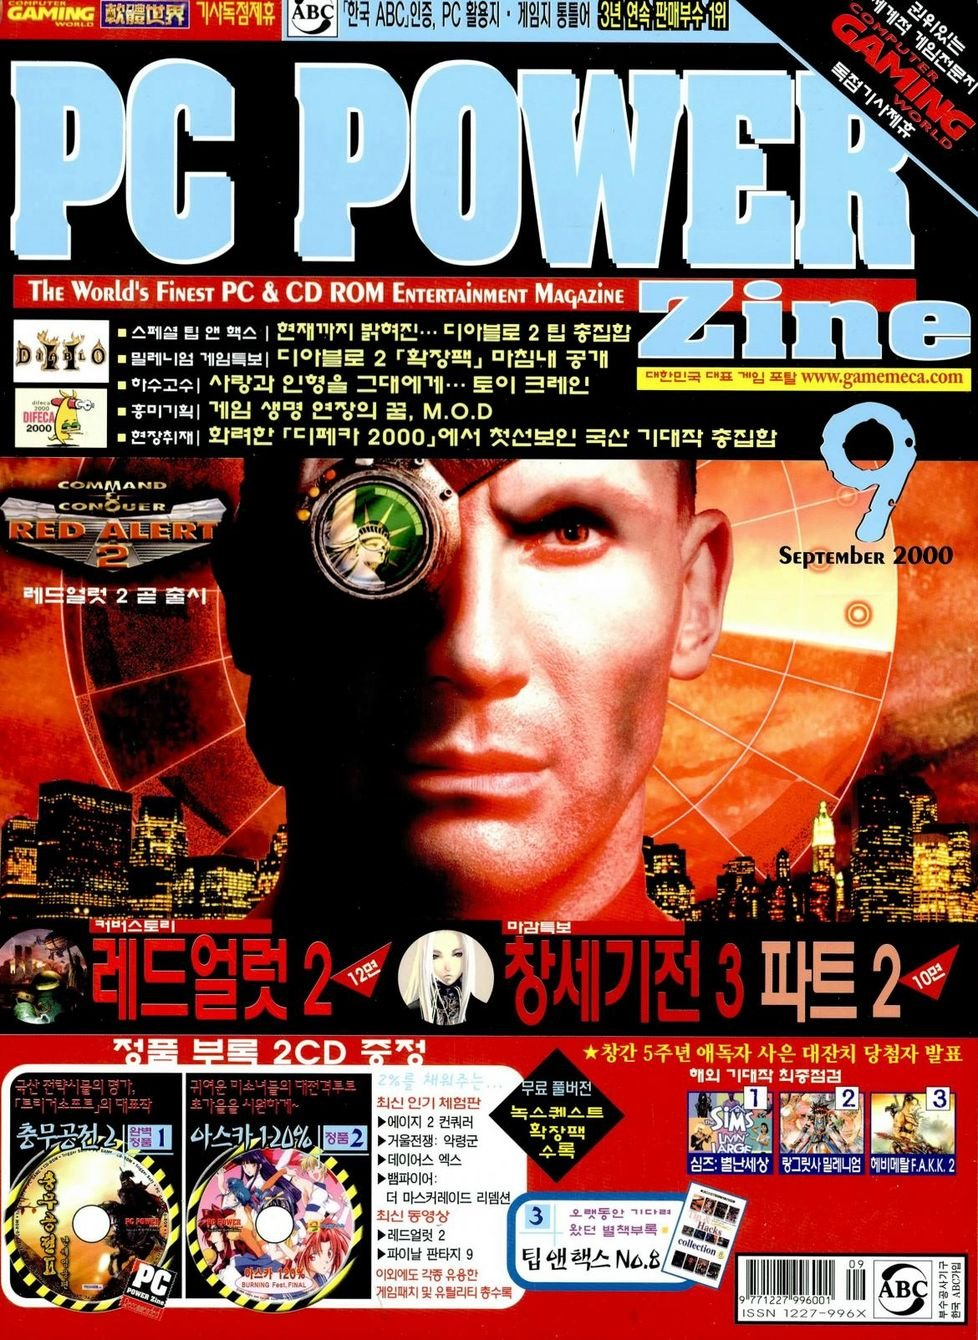 PC Power Zine Issue 62 (September 2000)